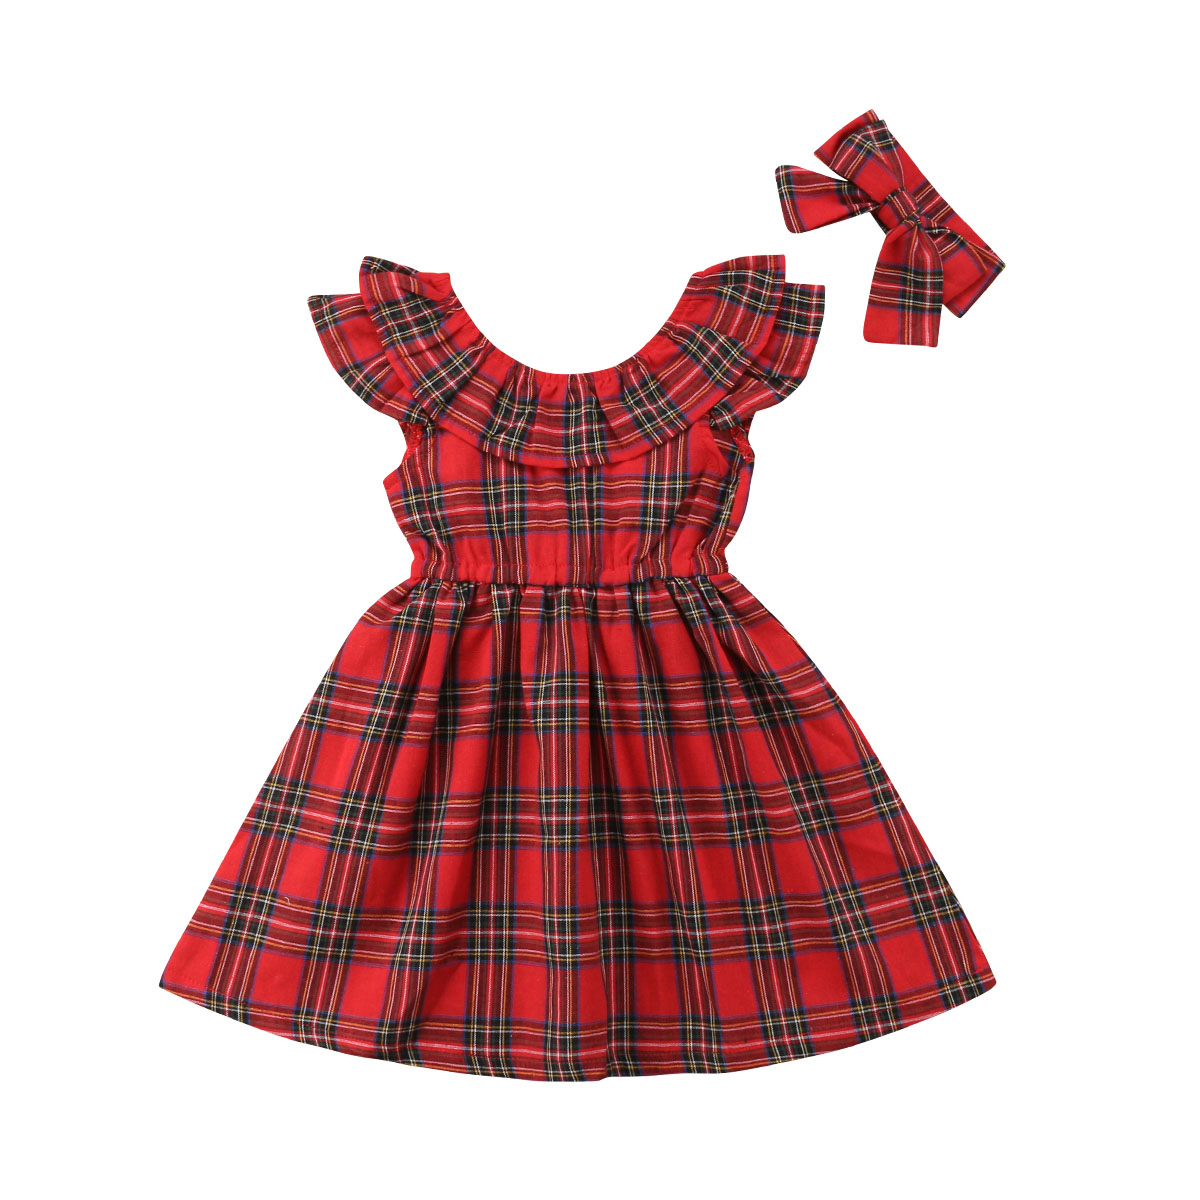 Dress Toddler Outfit Xmas Christmas Wedding Baby-Girls Princess Kids Checked Children